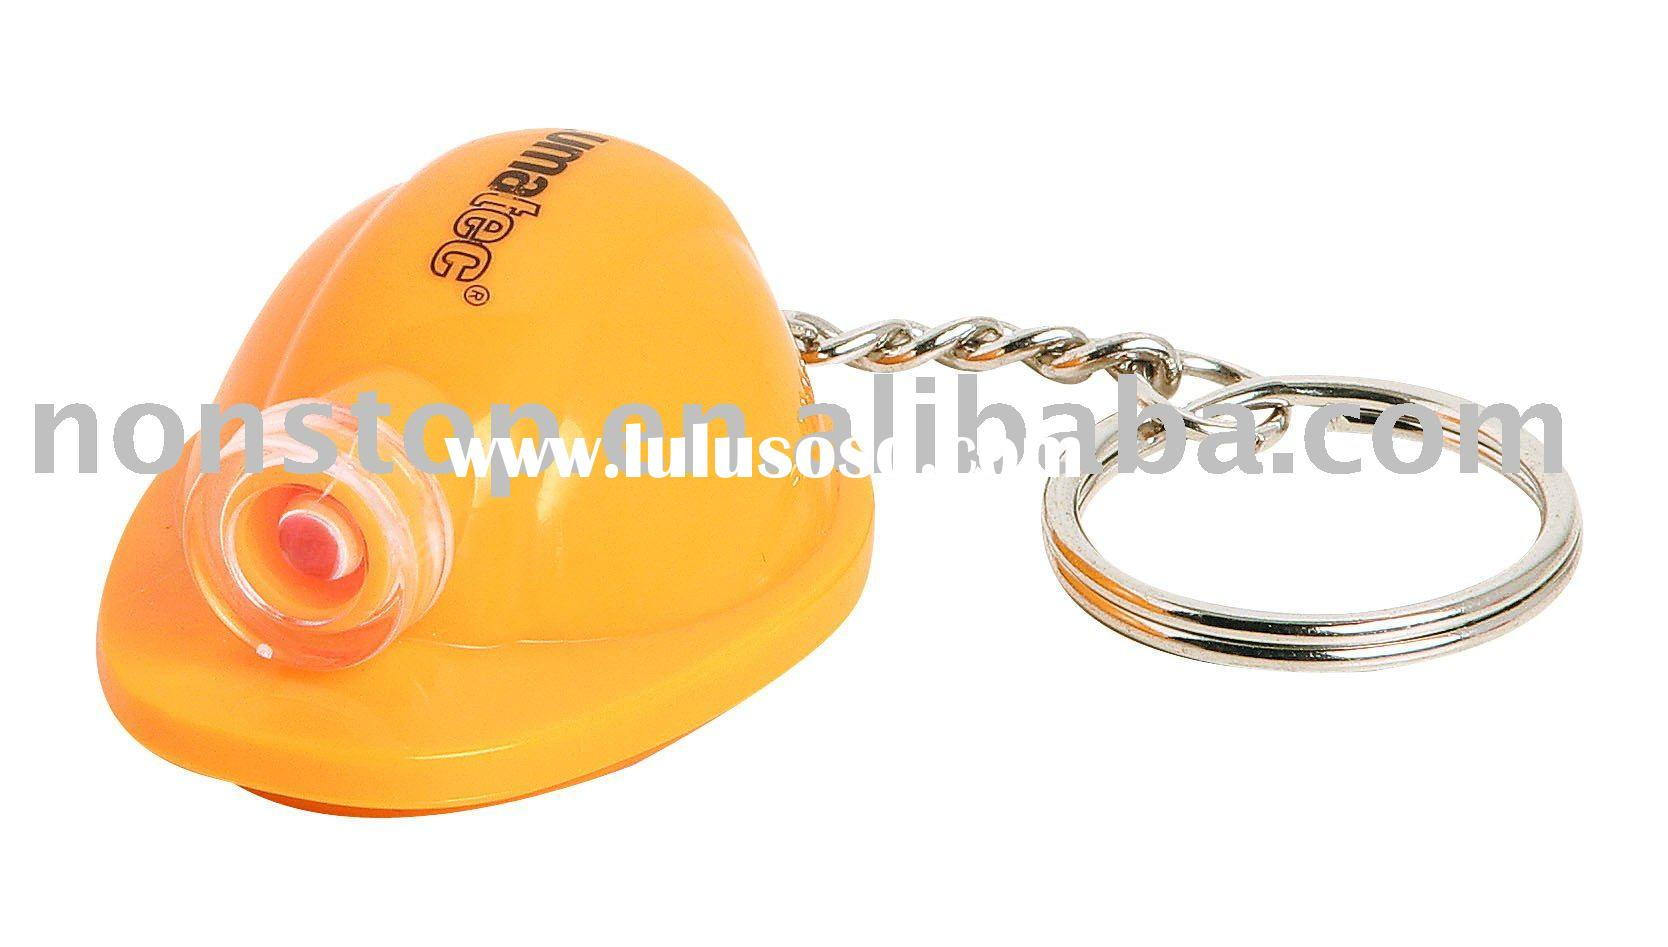 Mini Hard Hat Keychain/Keyring/key chain/key ring Light, Logo imprint Helmet Keyholder,Cap Keyring